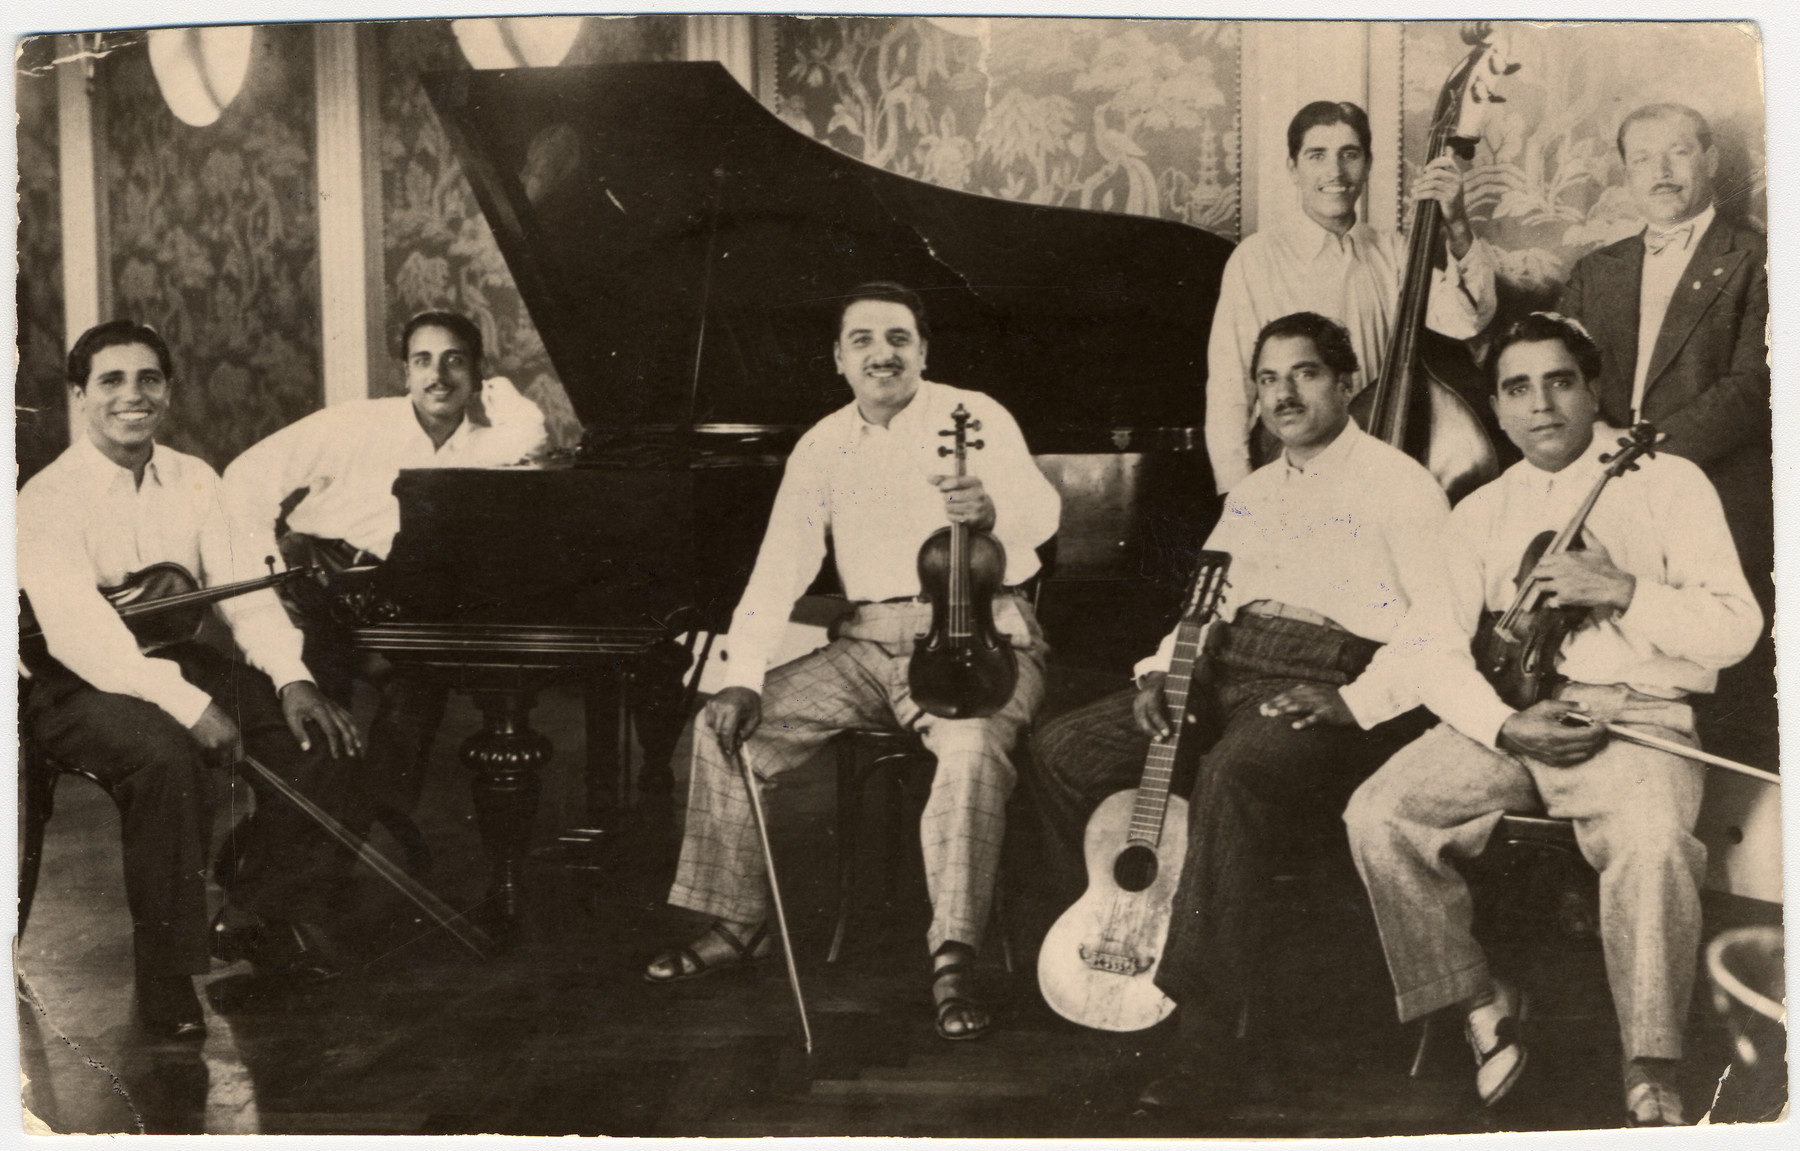 Members of a French-Hungarian Romani musical band pose for a photograph with their instruments.    Pictured from left to right are: Gabriel Reinhardt (donor's father), Benjamin (donor's uncle), Johan (donor's uncle), a cousin, Ben (donor's uncle), Josef (donor's uncle) and unknown [maybe another cousin].  The band was banned and all its members were sterelized in Wuerburg.